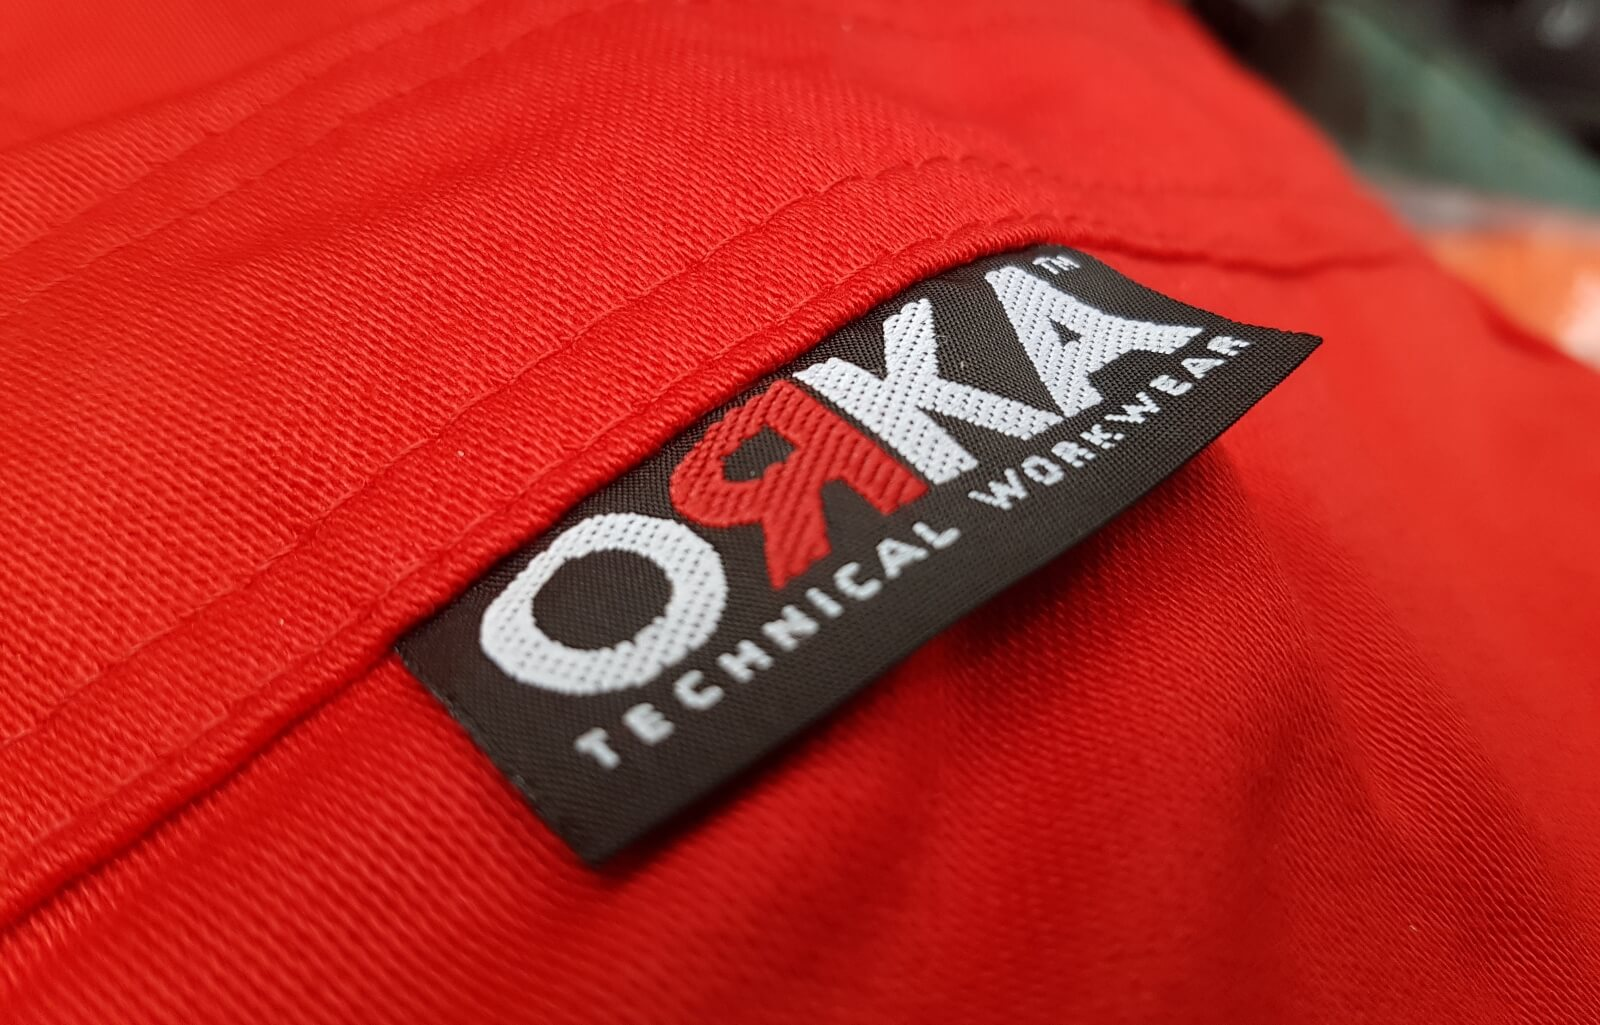 ORKA Technical Flame Resistant Workwear